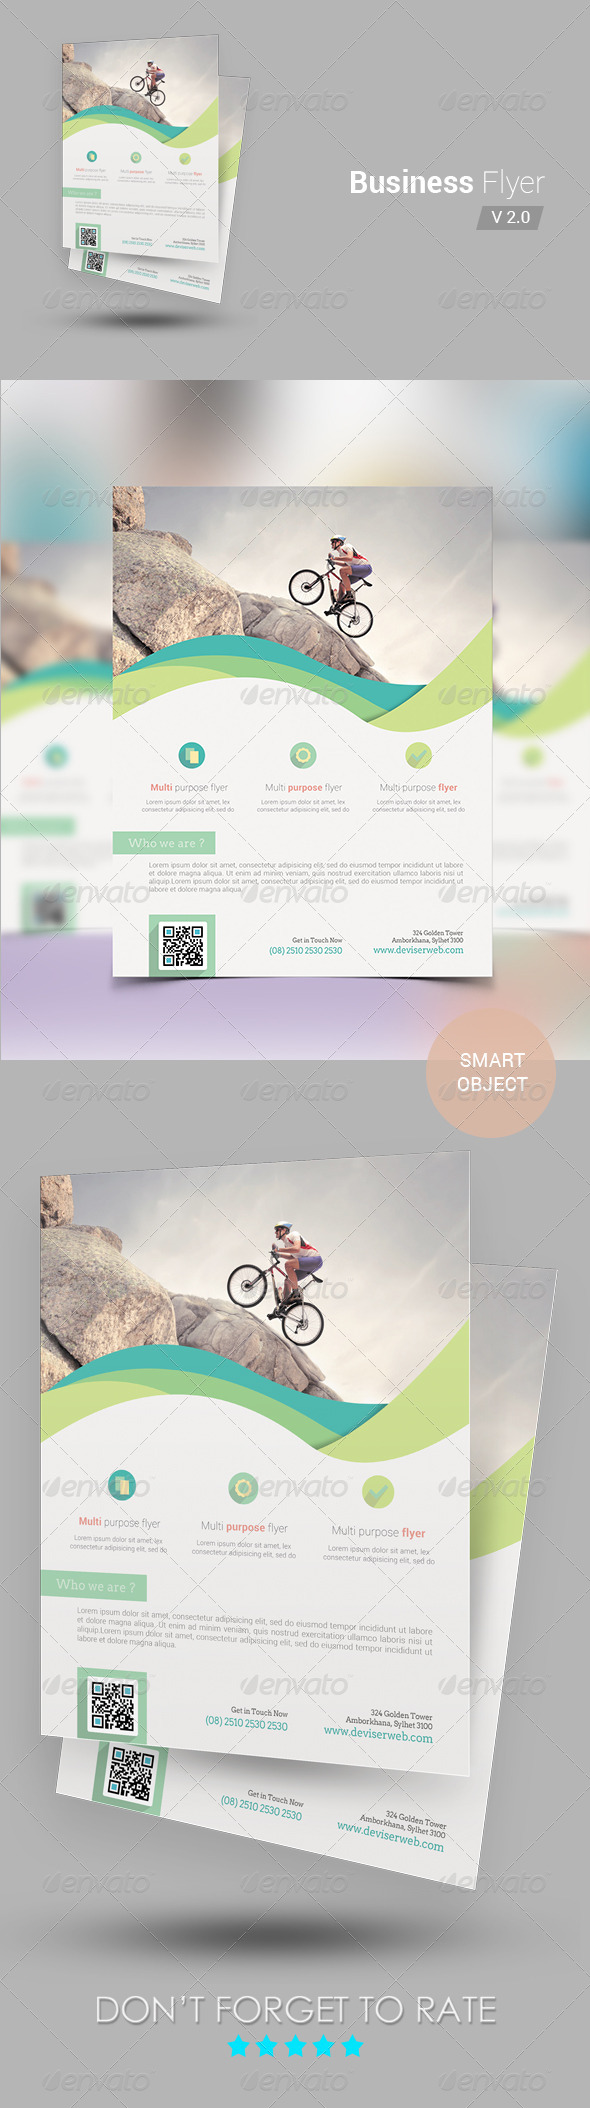 Corporate Business Flyer Template v2 - Corporate Flyers